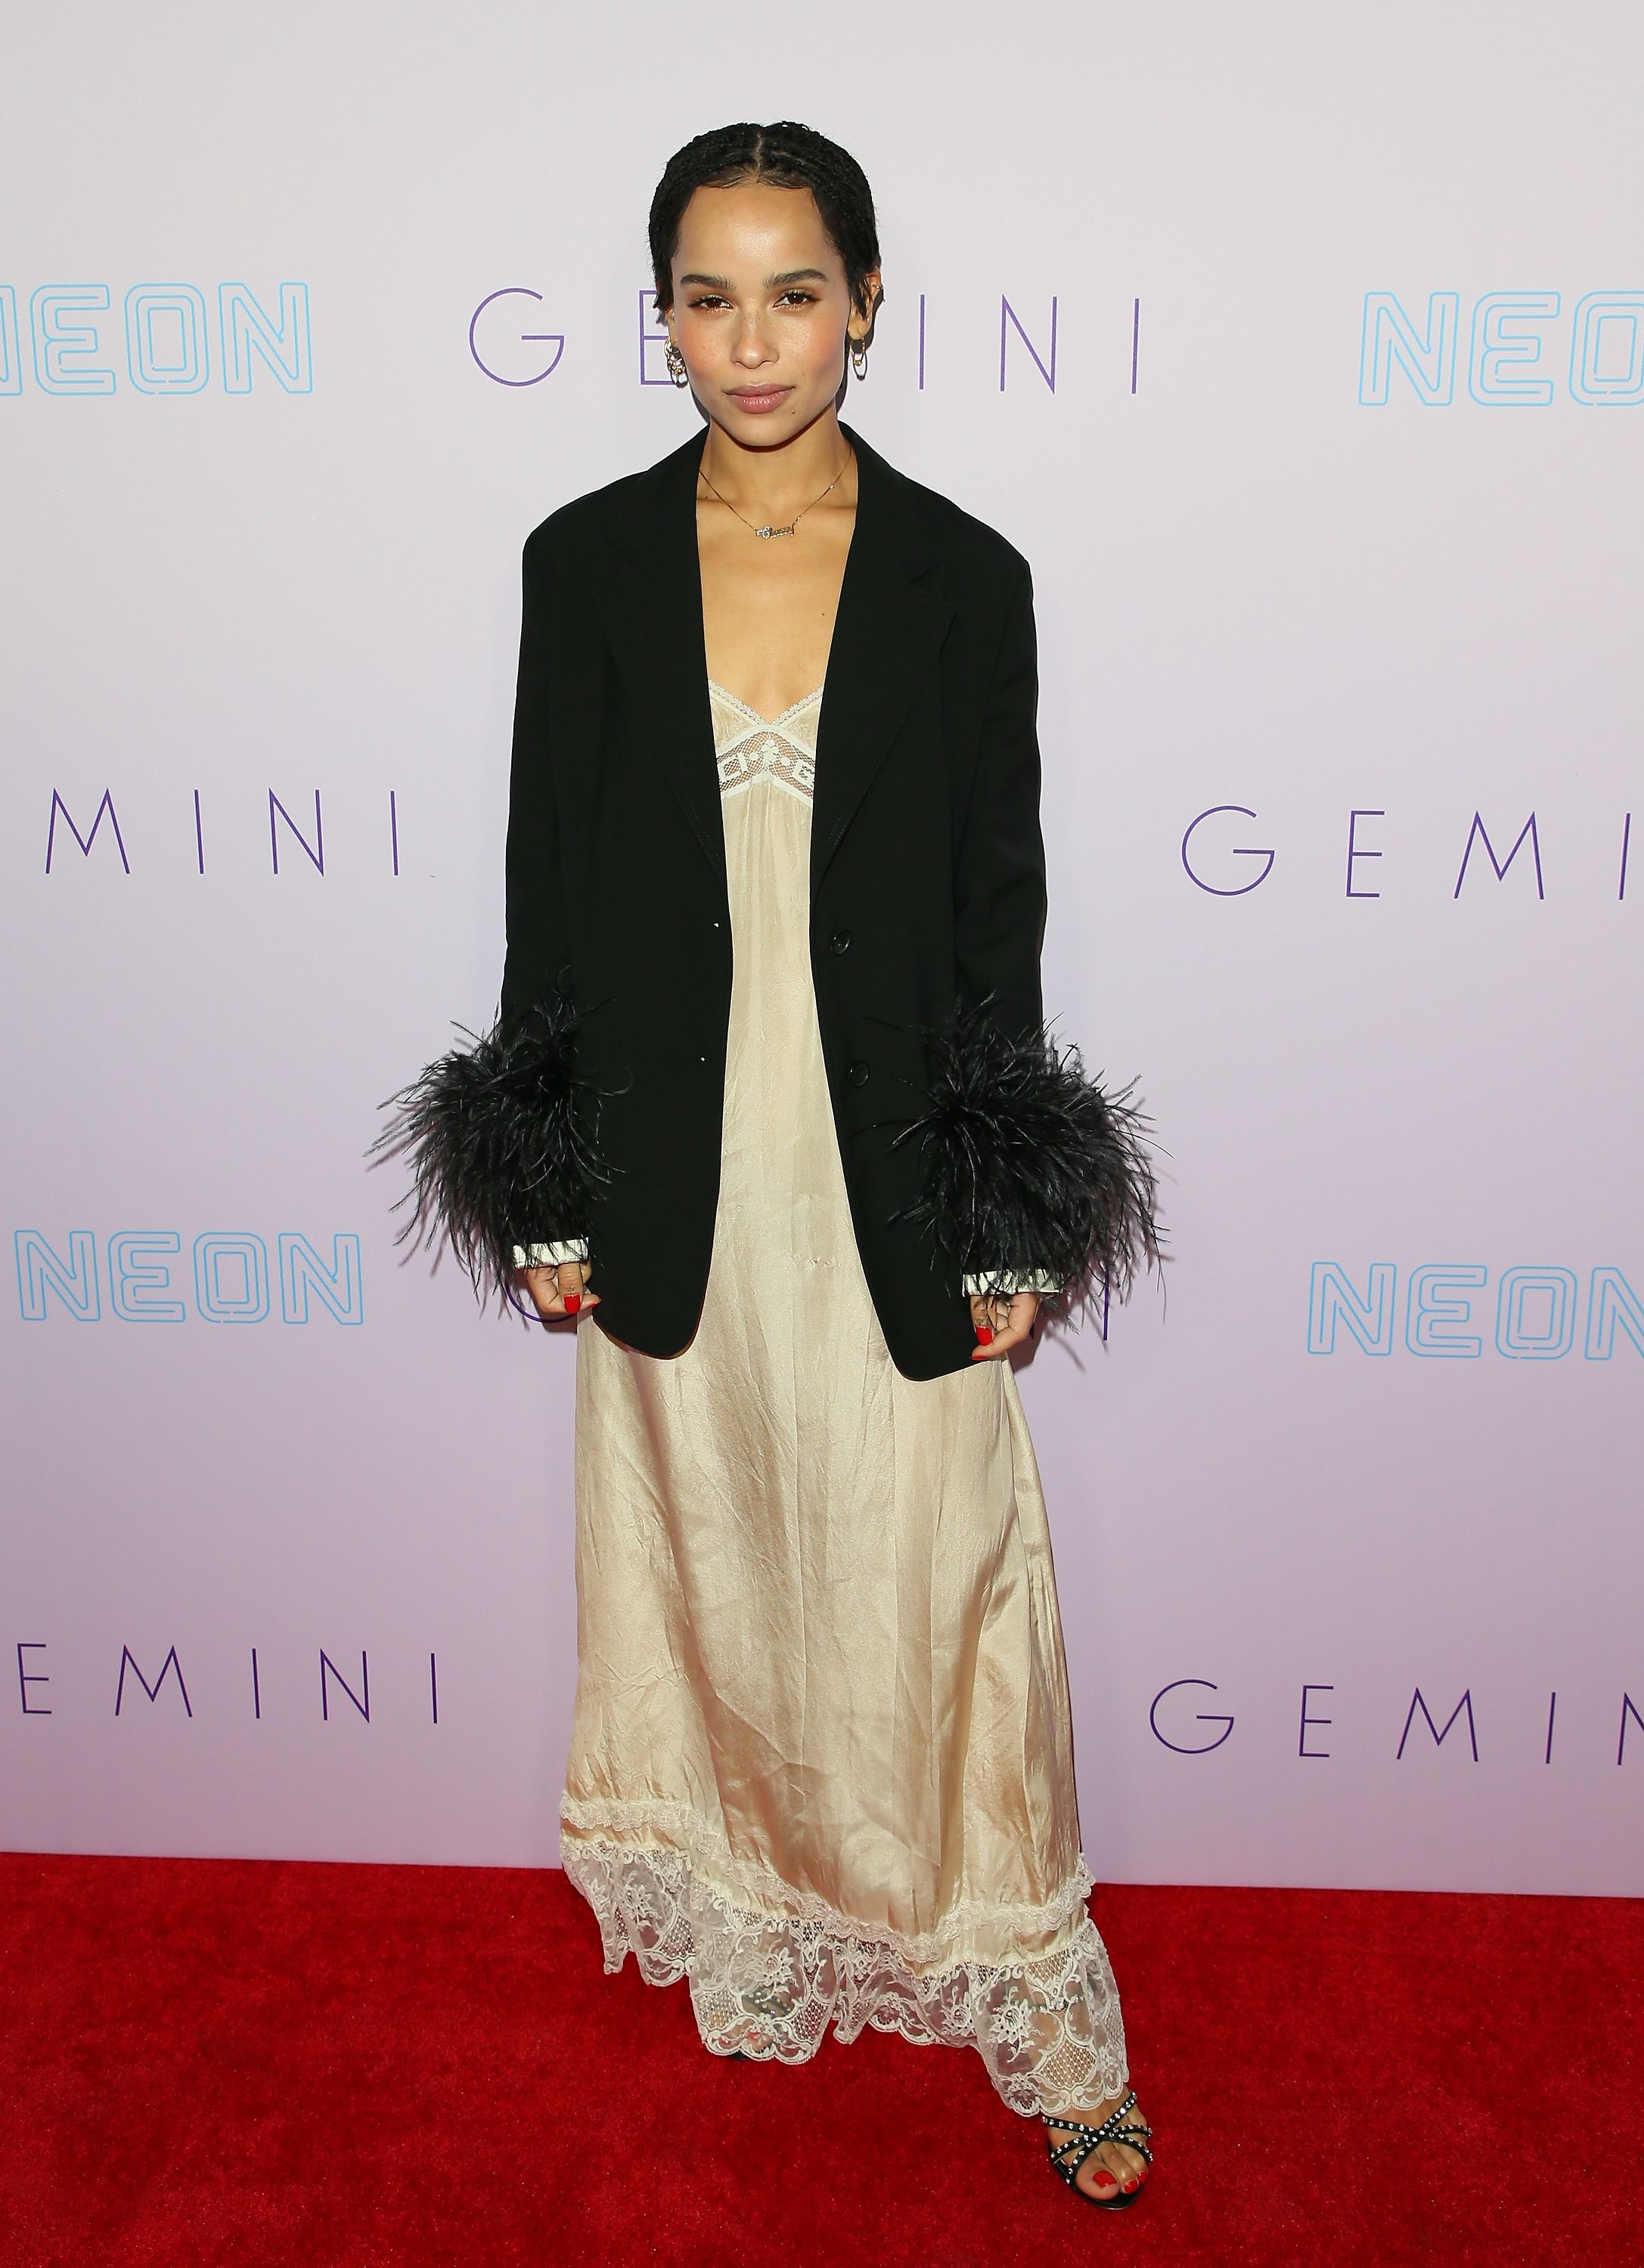 LOS ANGELES, CA - MARCH 15: Zoe Kravitz attends the Neon Los Angeles premiere of 'Gemini' on March 15, 2018 in Los Angeles, California. (Photo by JB Lacroix/ Getty Images)